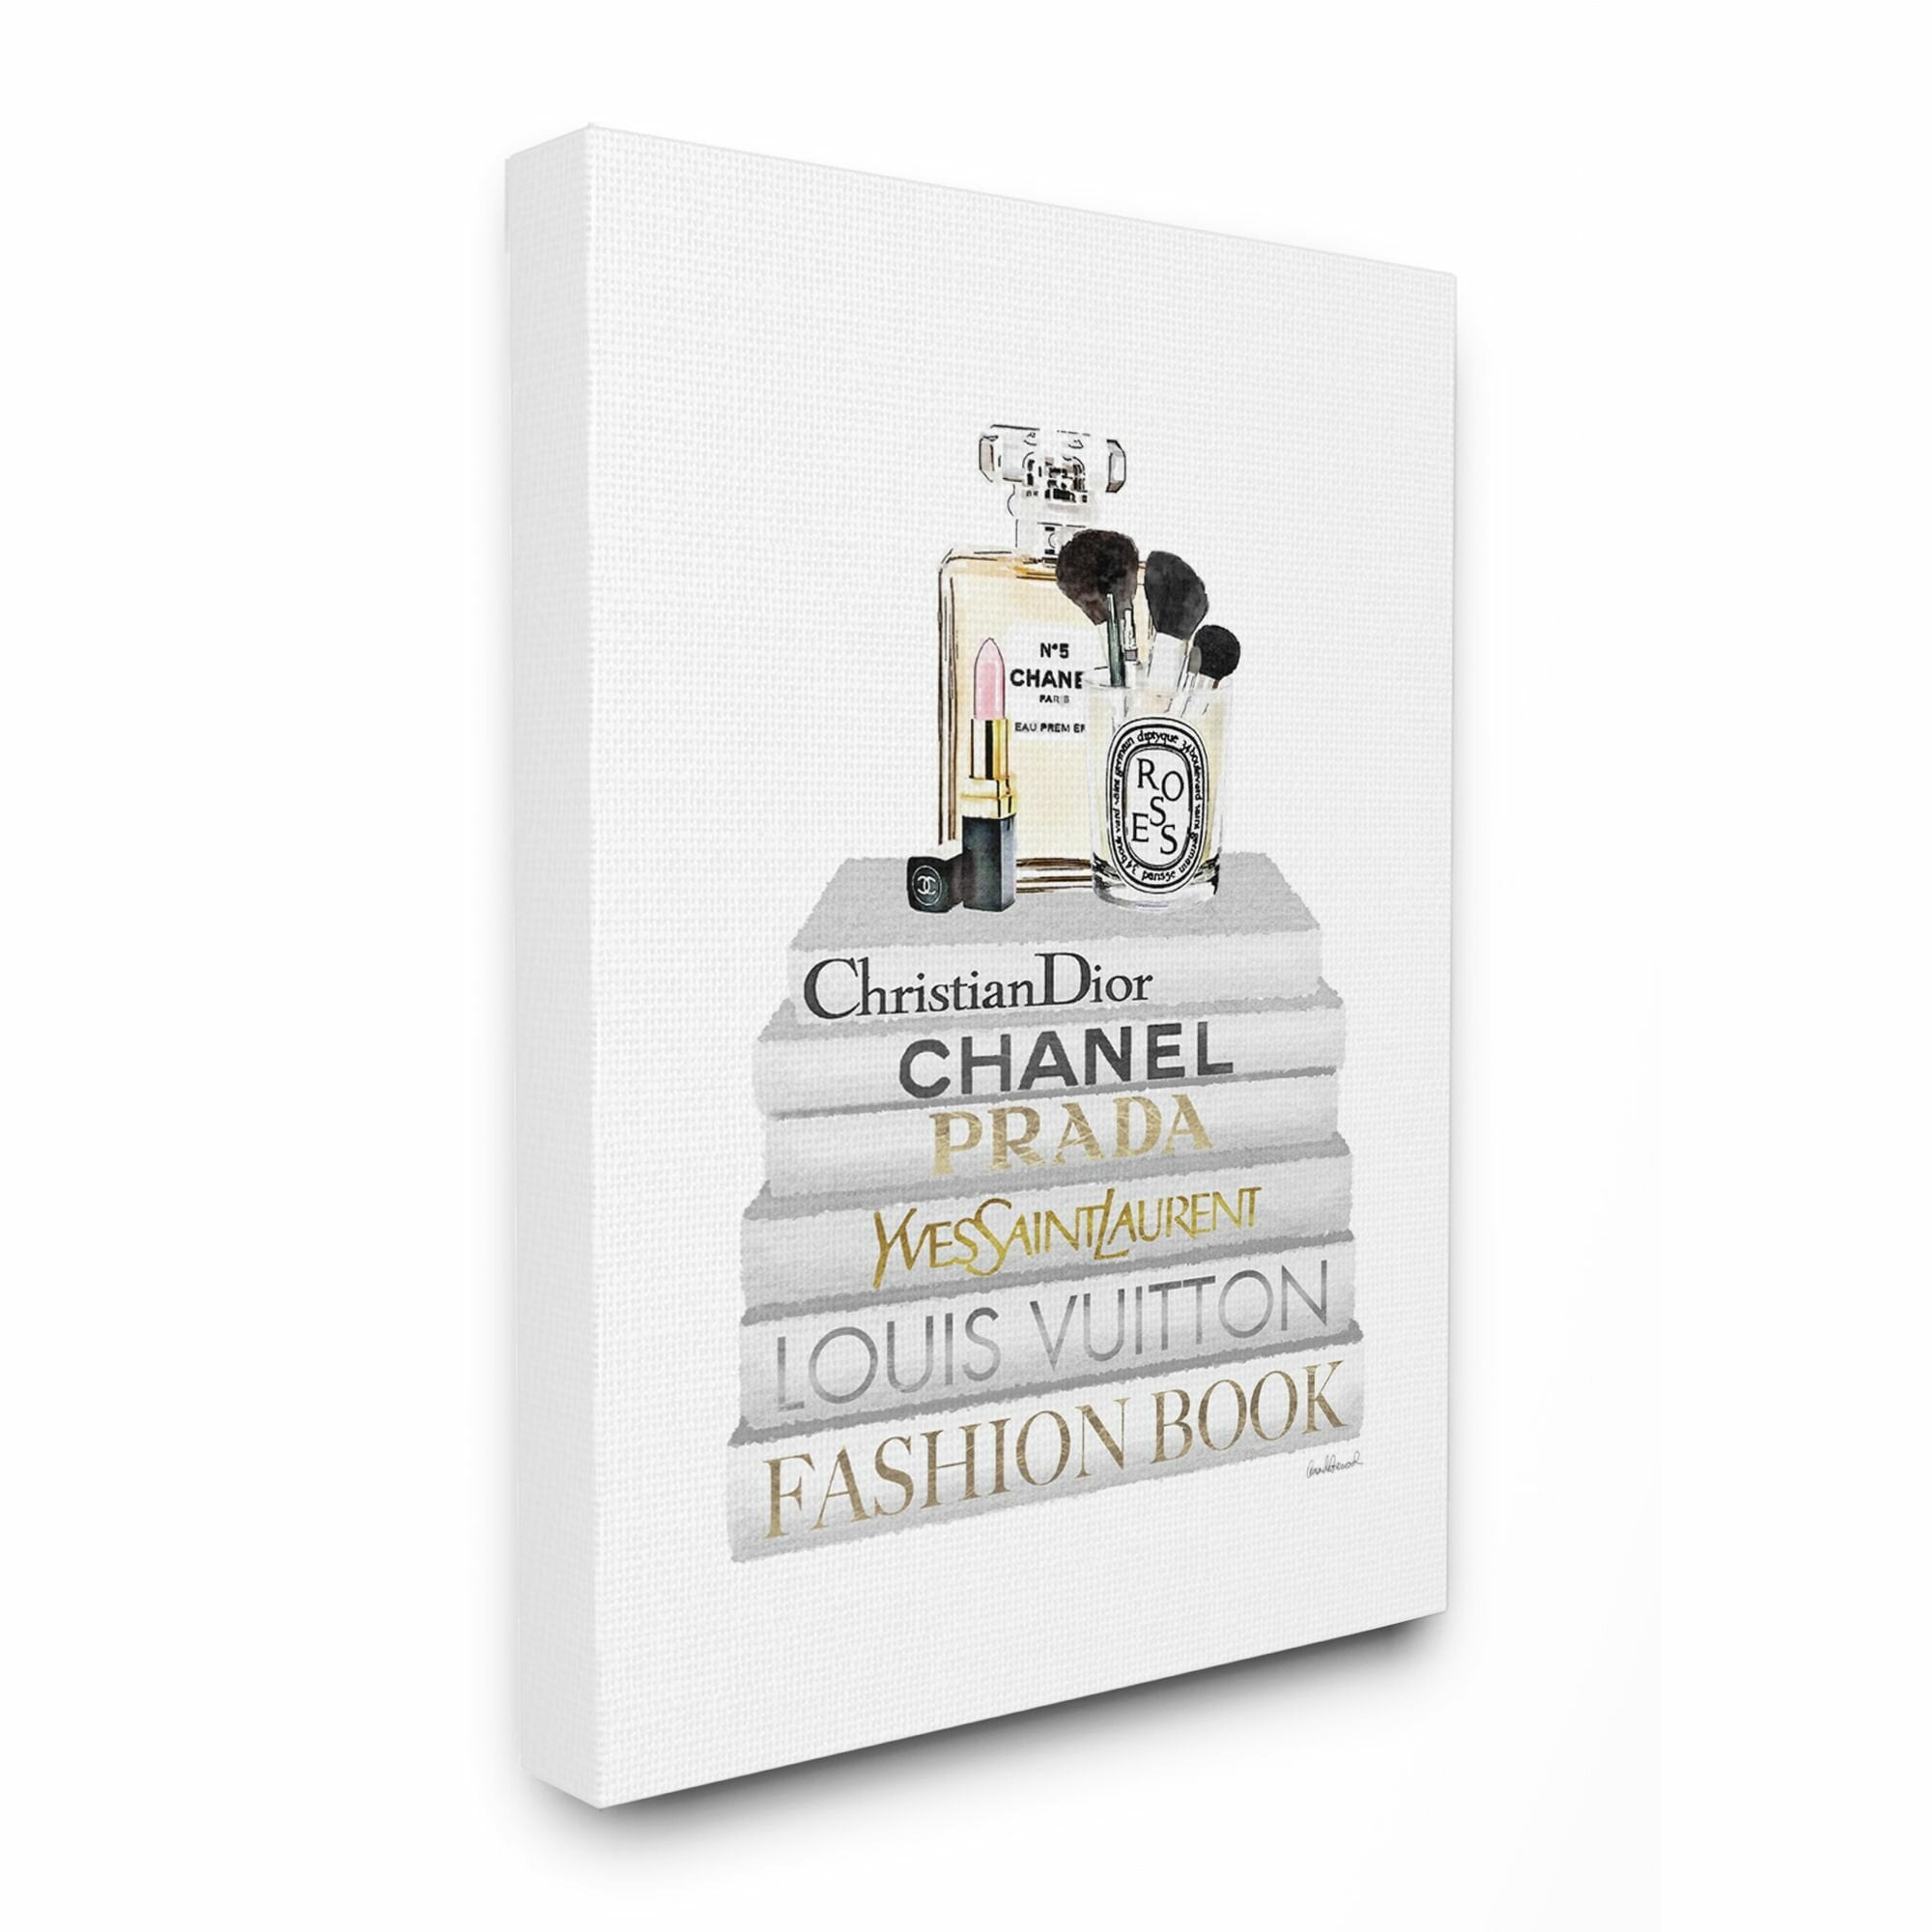 Fashion Designer Makeup Bookstack Textual Art Turn Your Home Into A Spring Oasis With Wayfair S 20 Best Decor Pieces Popsugar Home Photo 21